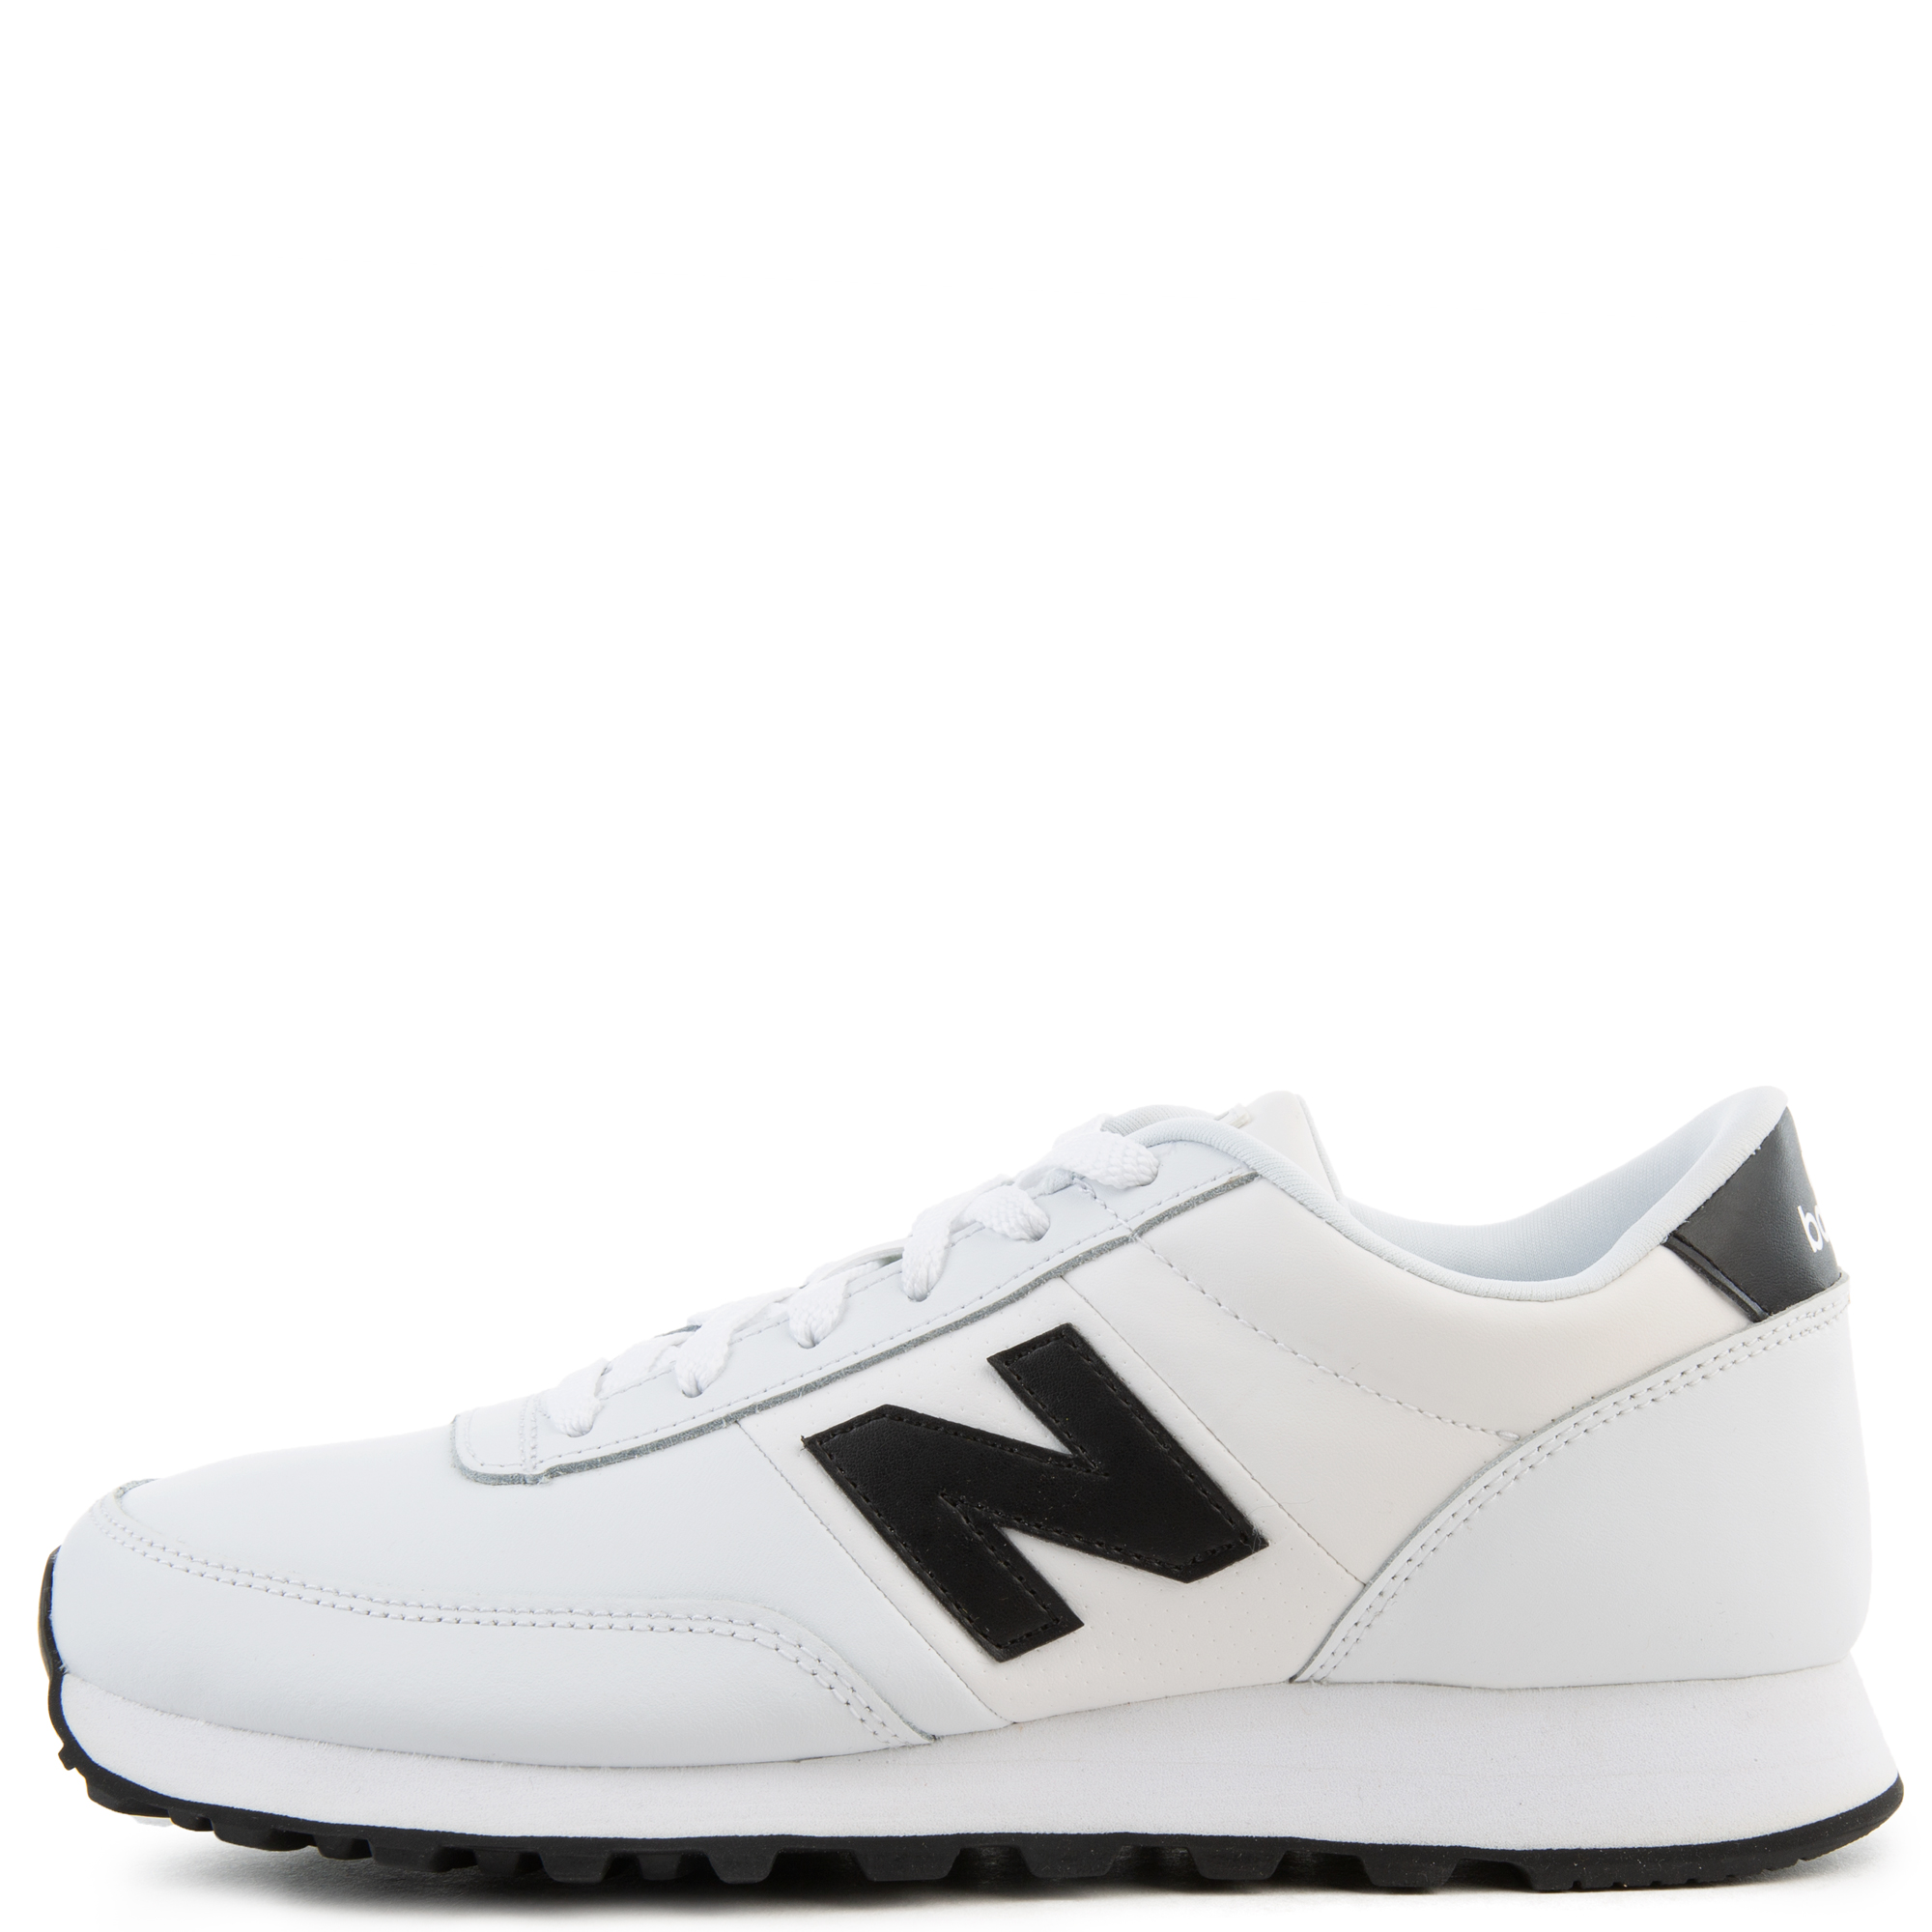 New Balance for Women: 501 Classics White Sneakers